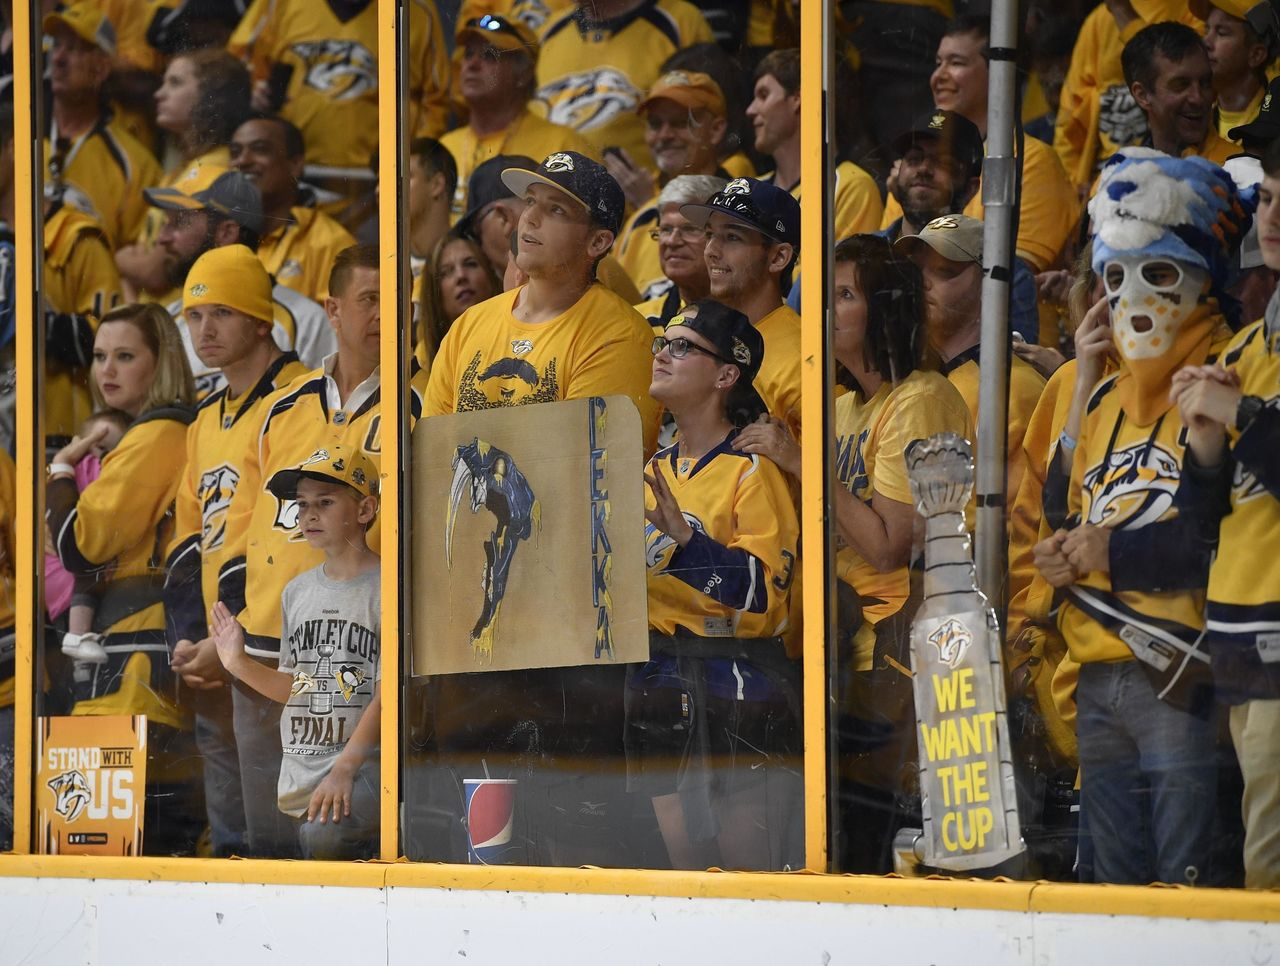 Cropped 2017 06 04t000538z 1889550180 nocid rtrmadp 3 nhl stanley cup final pittsburgh penguins at nashville predators